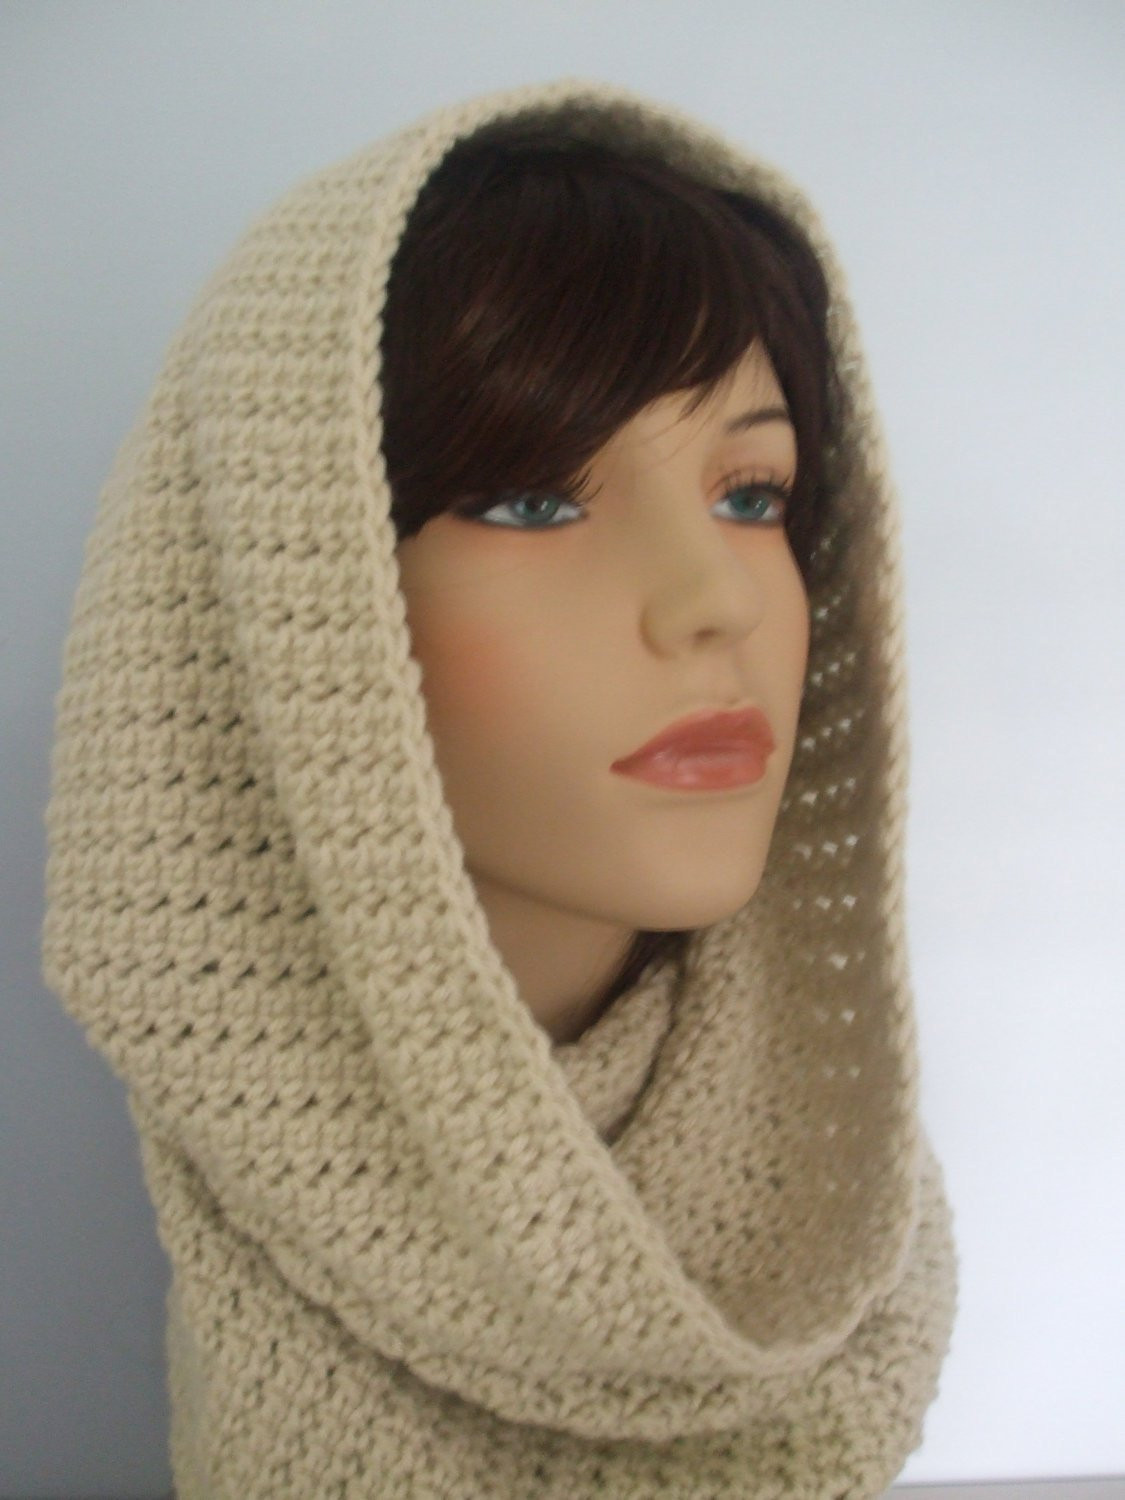 Crochet Neck Scarf Lovely All In E Crochet Cowl Neck Hood and Scarf Item 12 Of Great 50 Ideas Crochet Neck Scarf